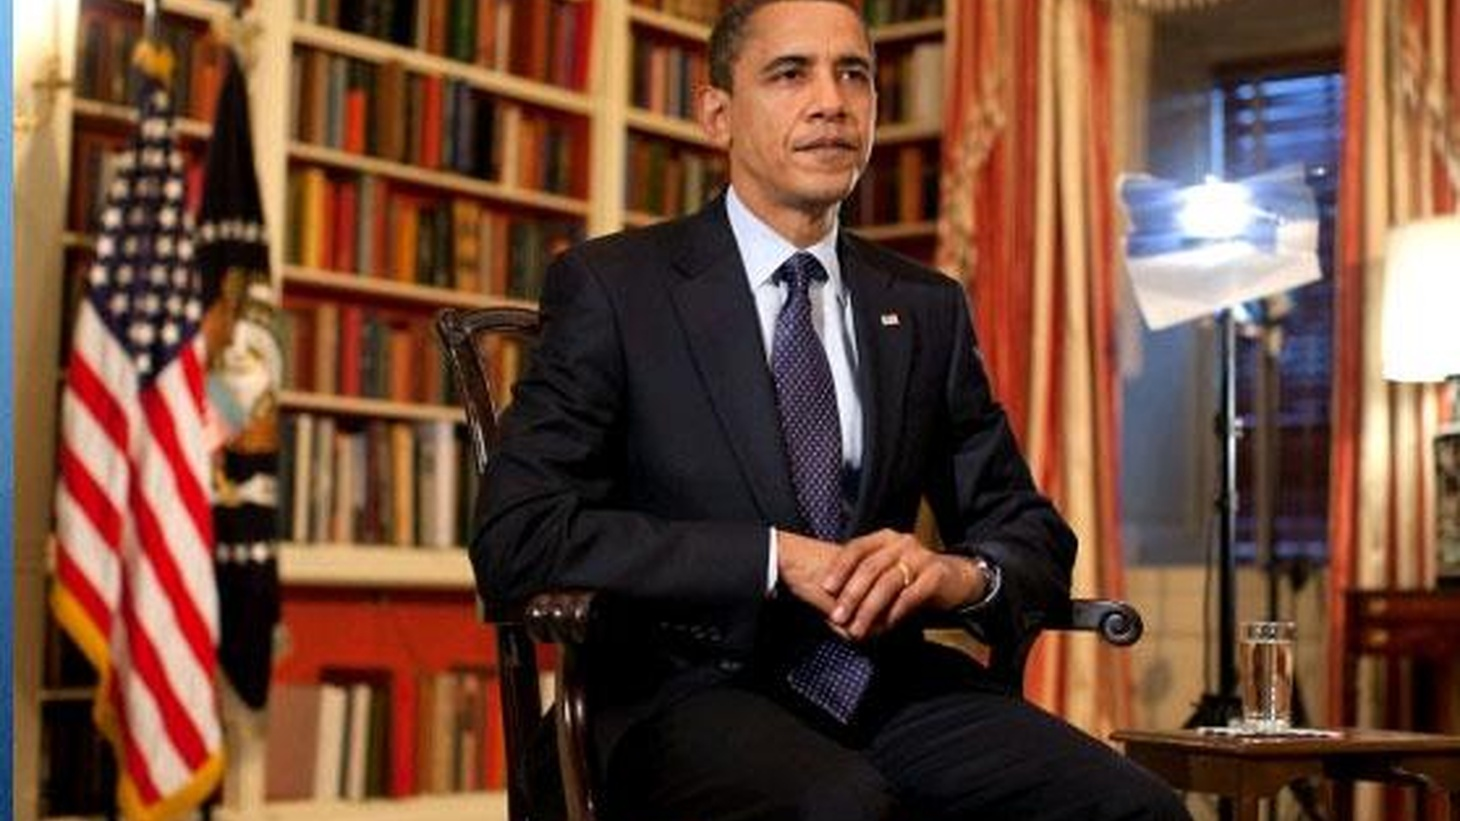 Last week, President Barack Obama spent a few days in southern California, where he held town hall meetings in Los Angeles and Orange Counties. On Tuesday, he will address the nation in a televised press conference. Obama is expected to discuss the budget and his economic recovery plan. KCRW will carry the press conference live at 5pm.